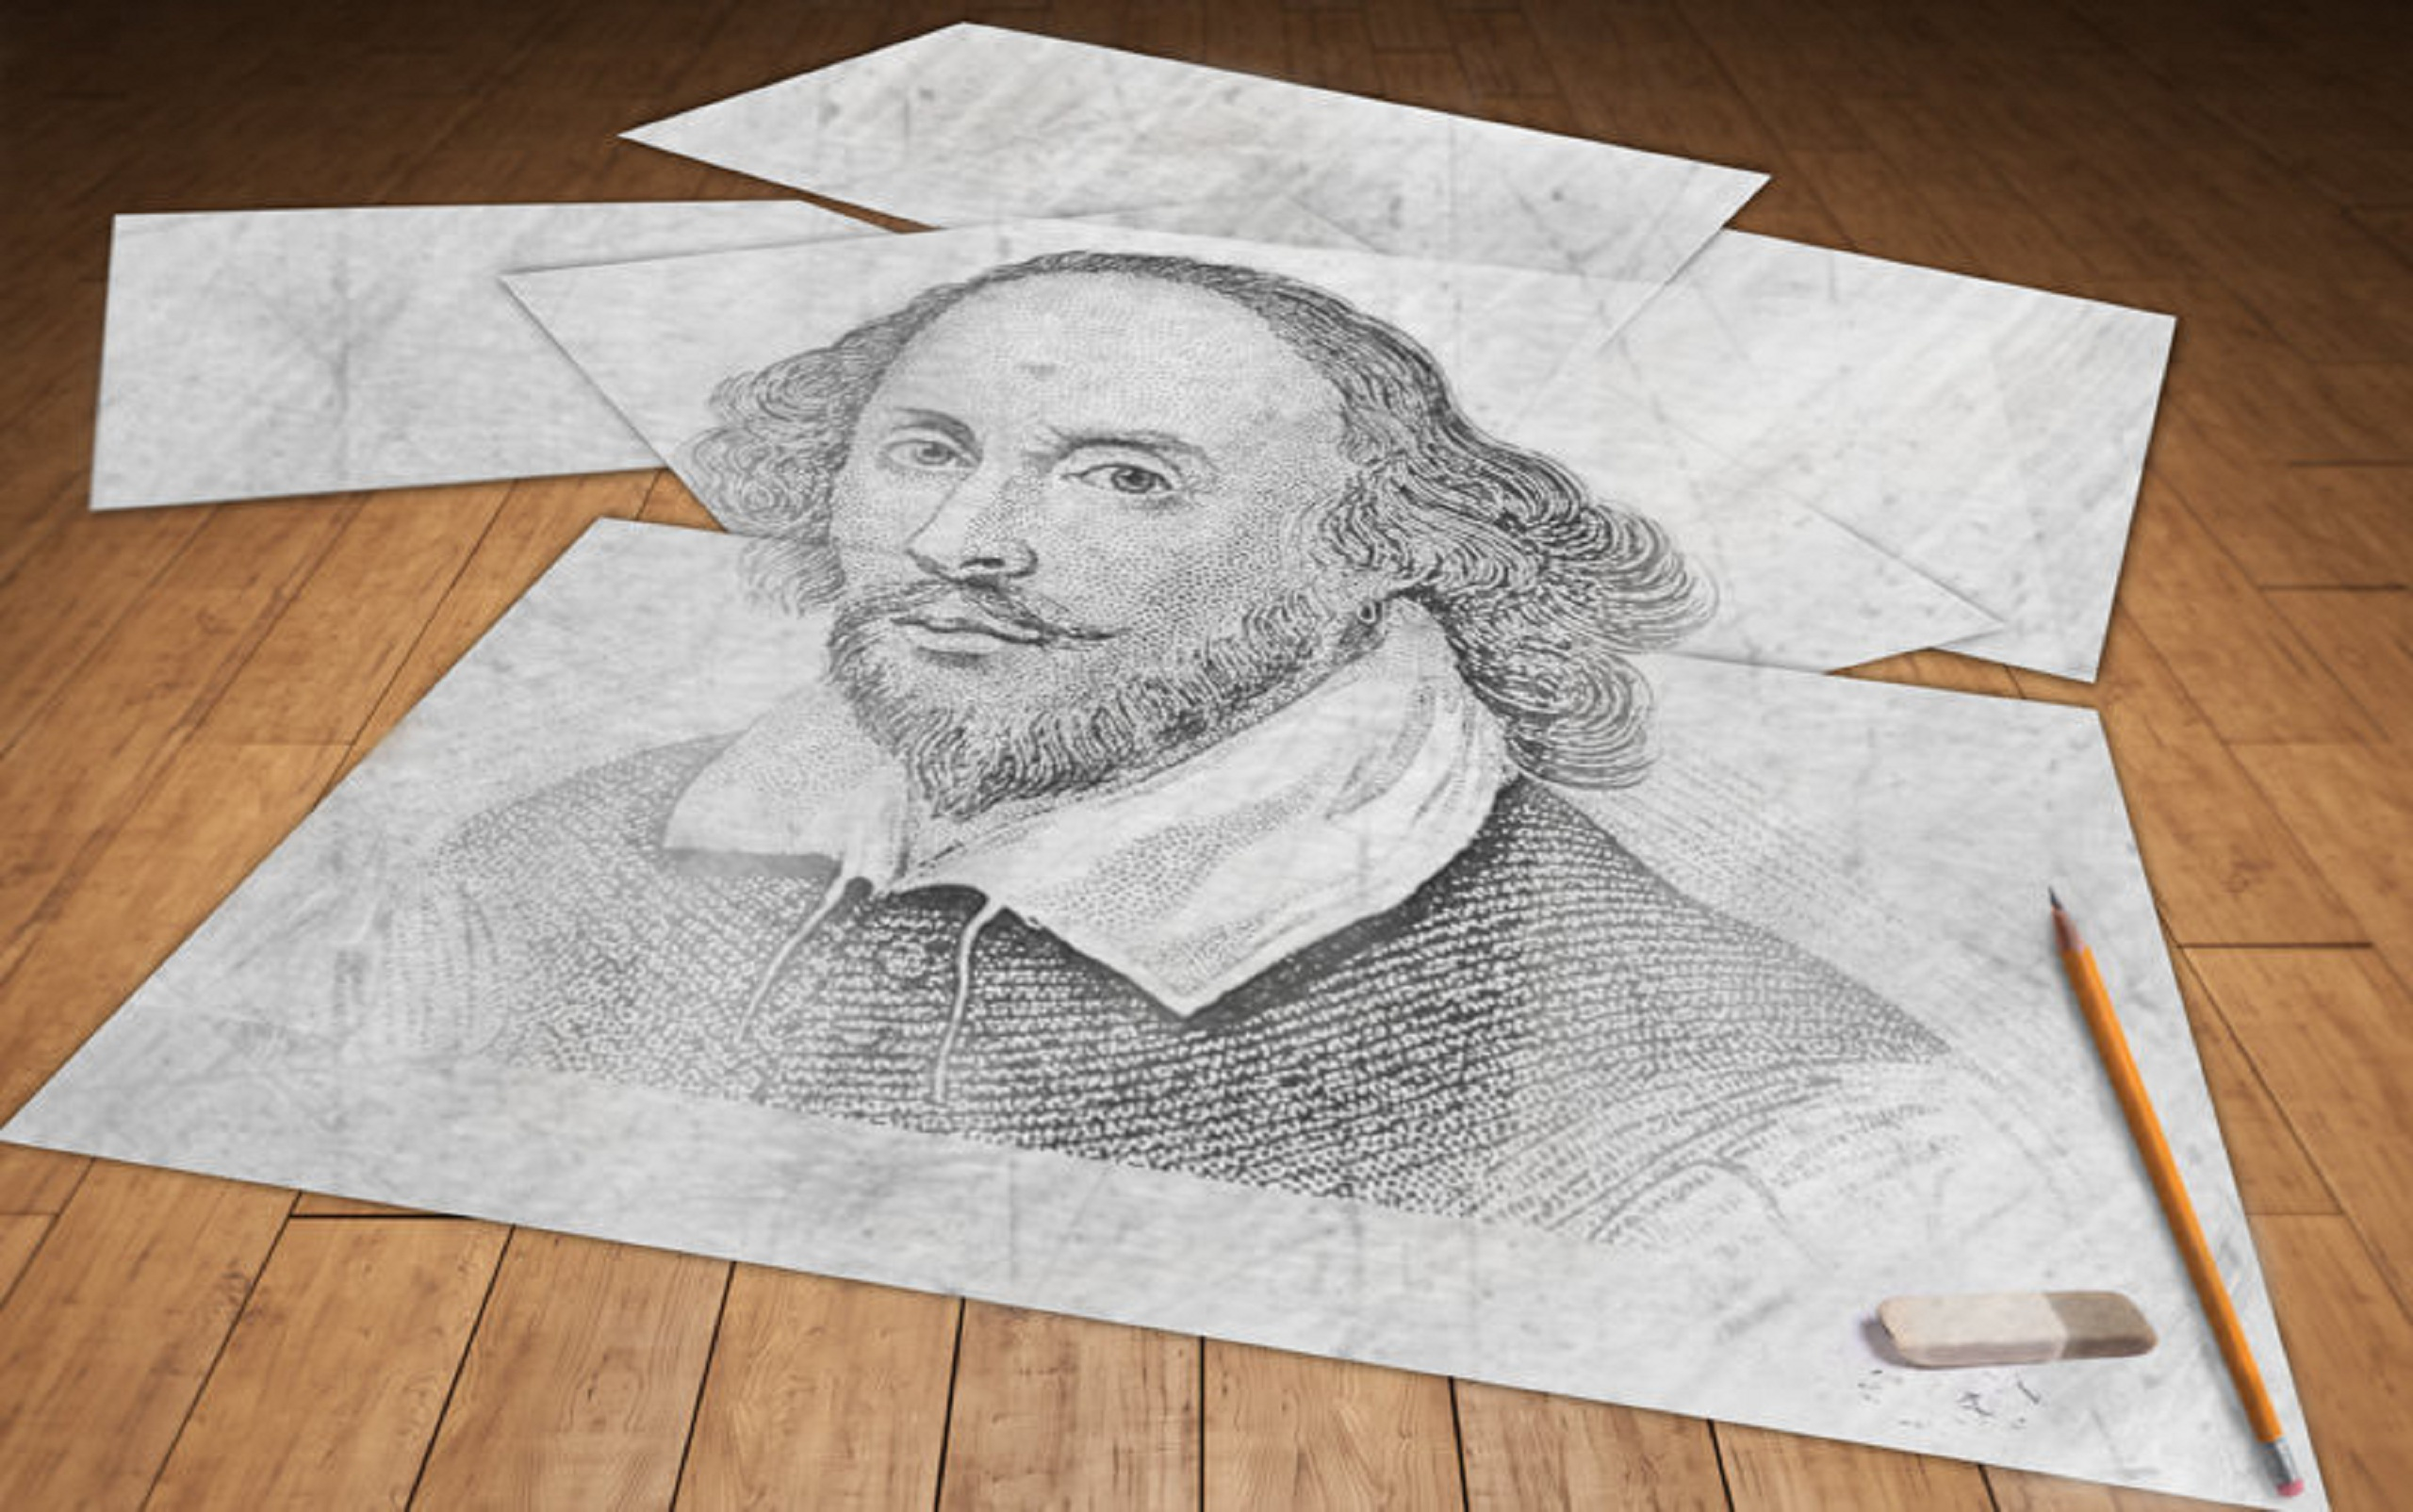 Shakespeare emerged as a perfectionist